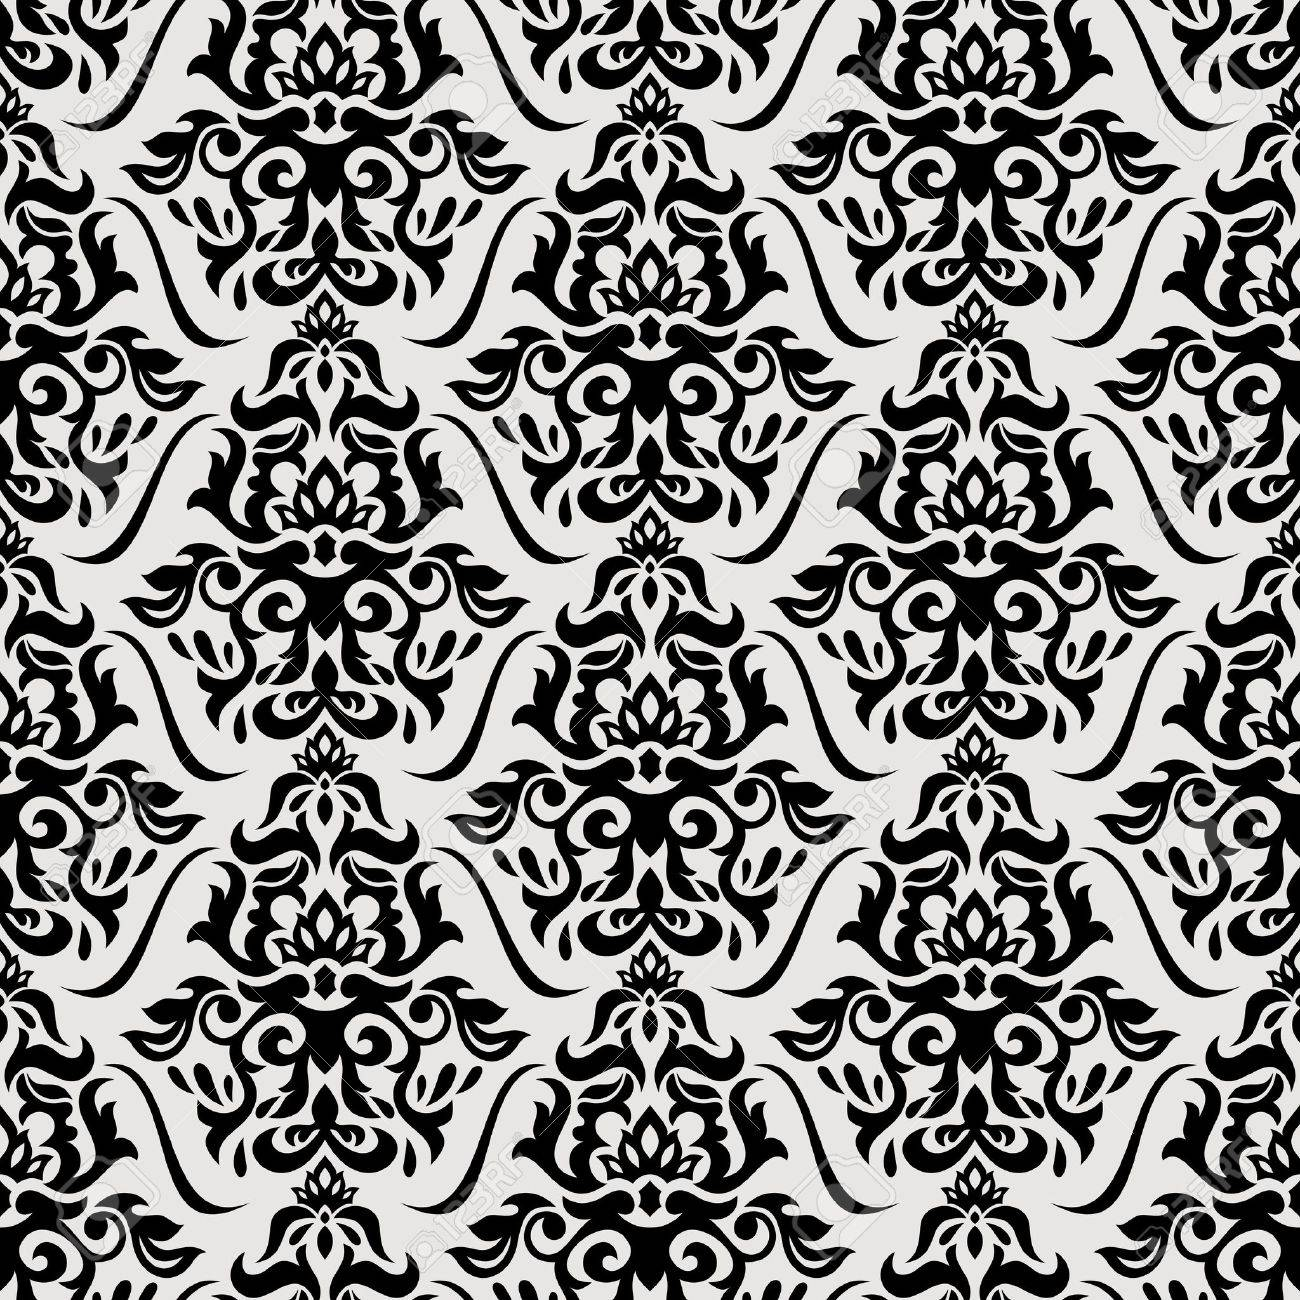 Abstract floral seamless pattern background vector illustration Stock Vector - 22098730